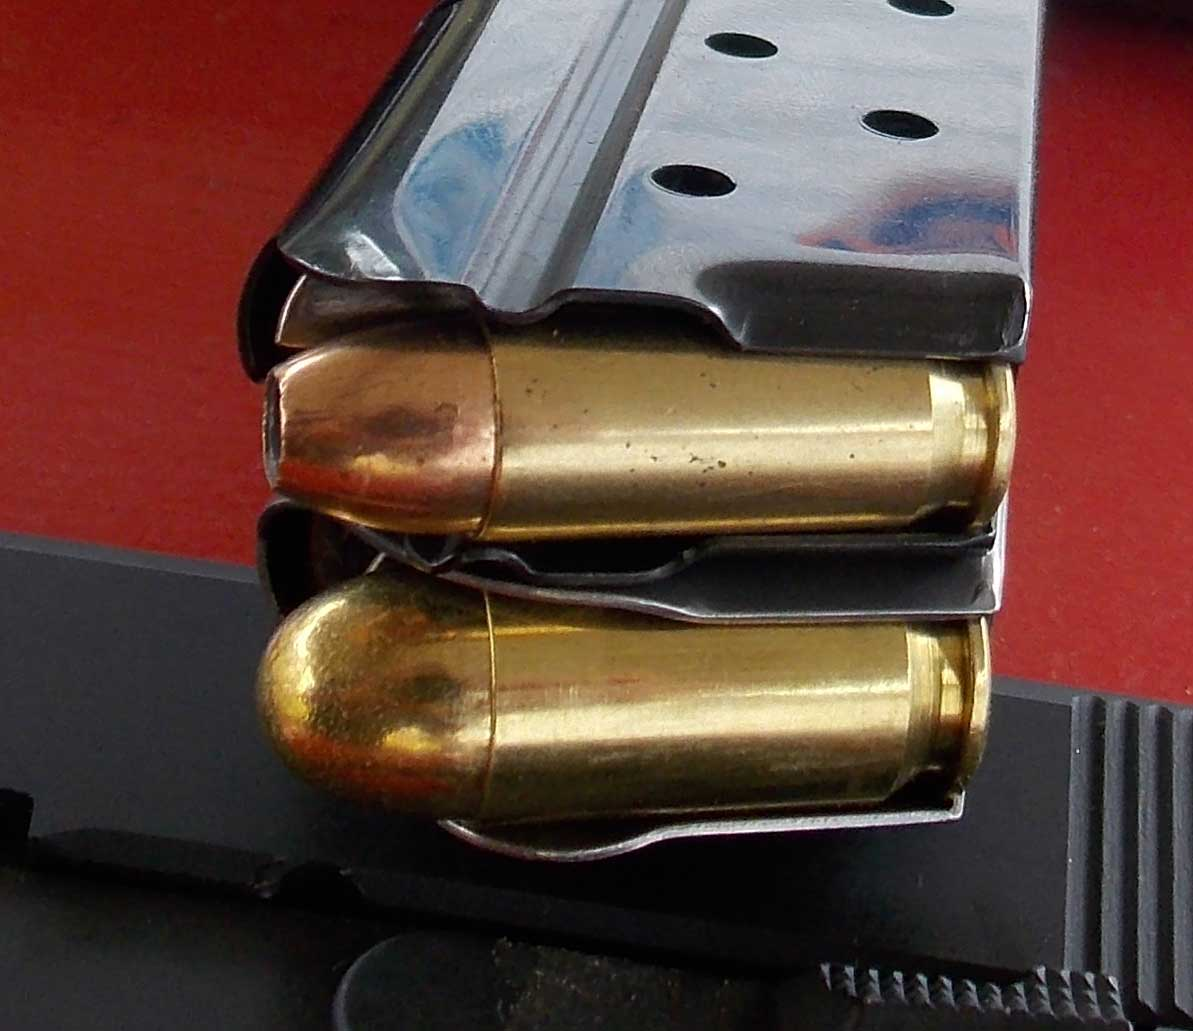 .38 Super magazine, above, .45 ACP, lower.